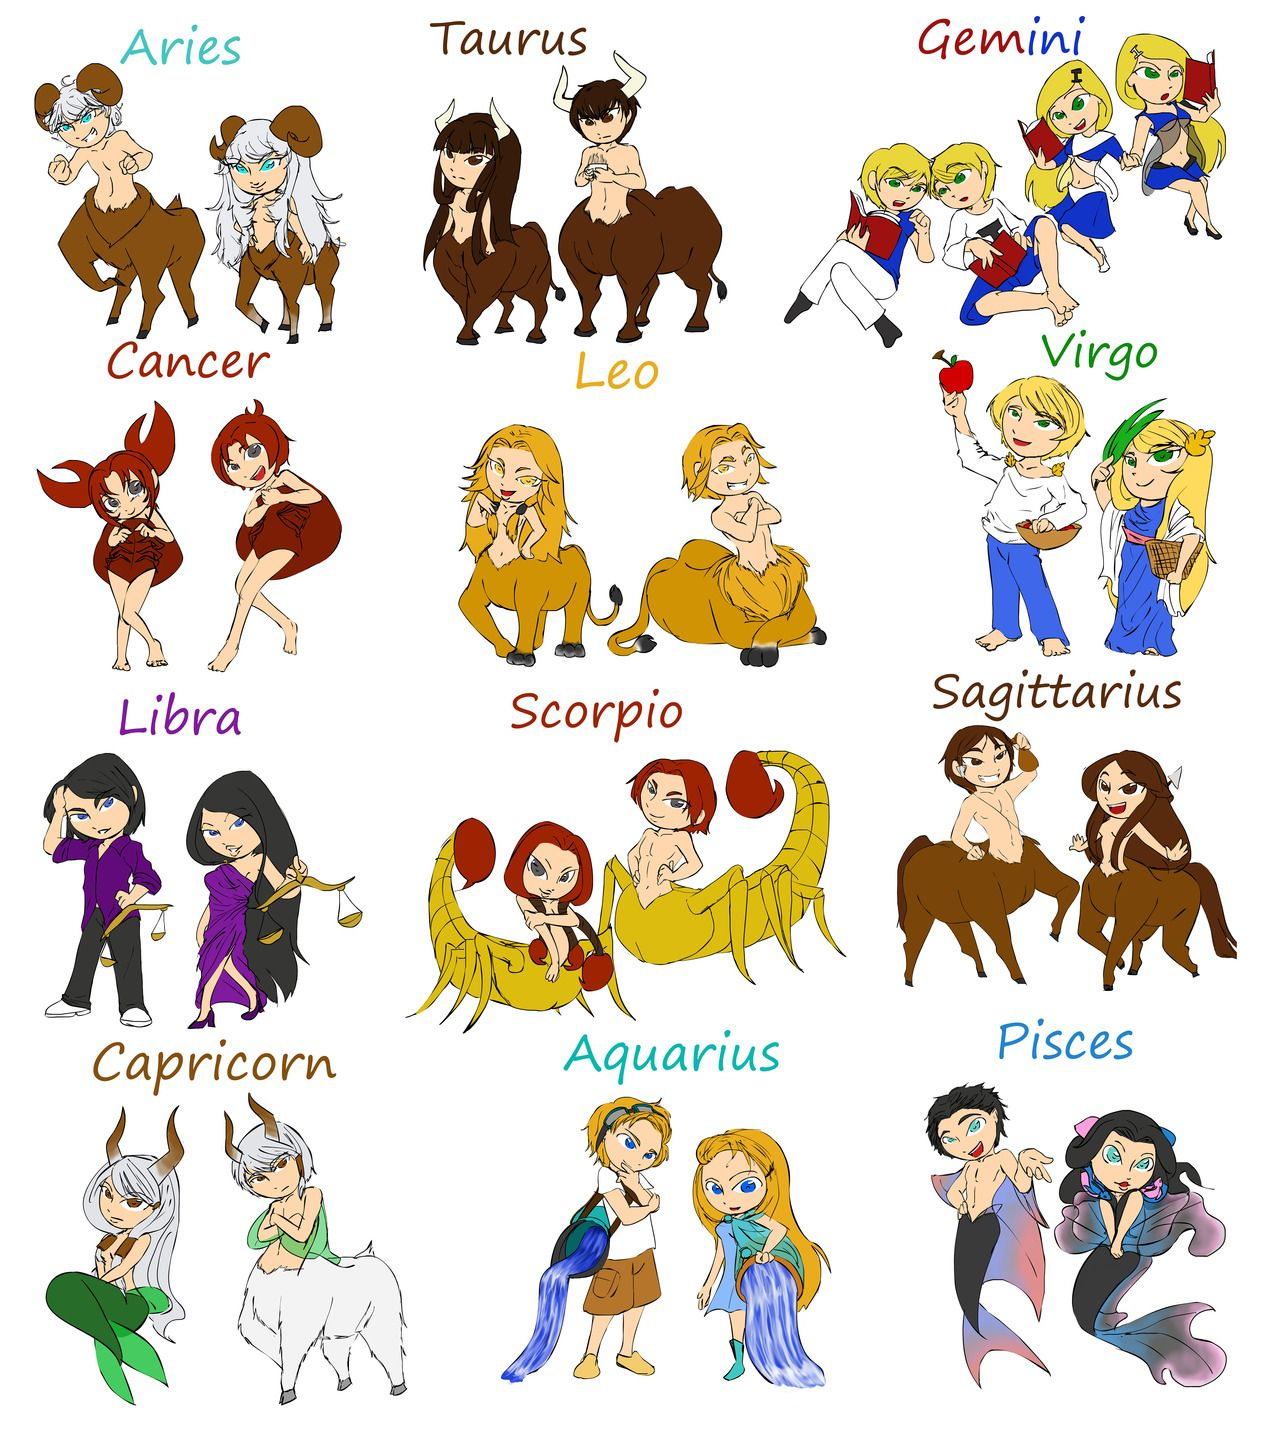 eee the Capricorn, tbh i dont match my zodiac one way or another but she coote